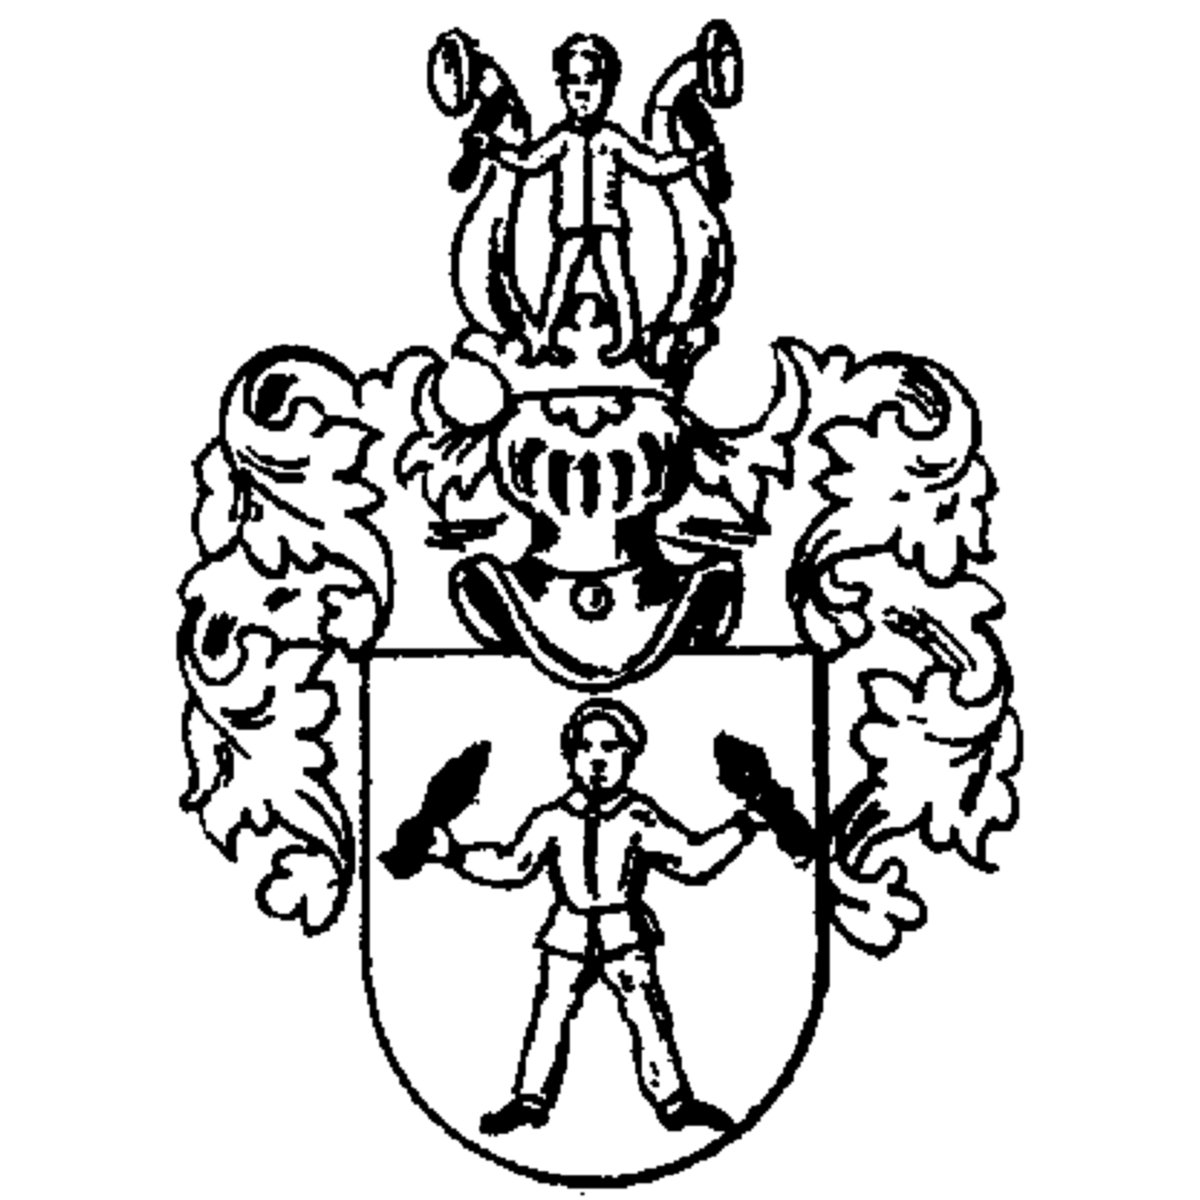 Döbele family, heraldry, genealogy, Coat of arms and last